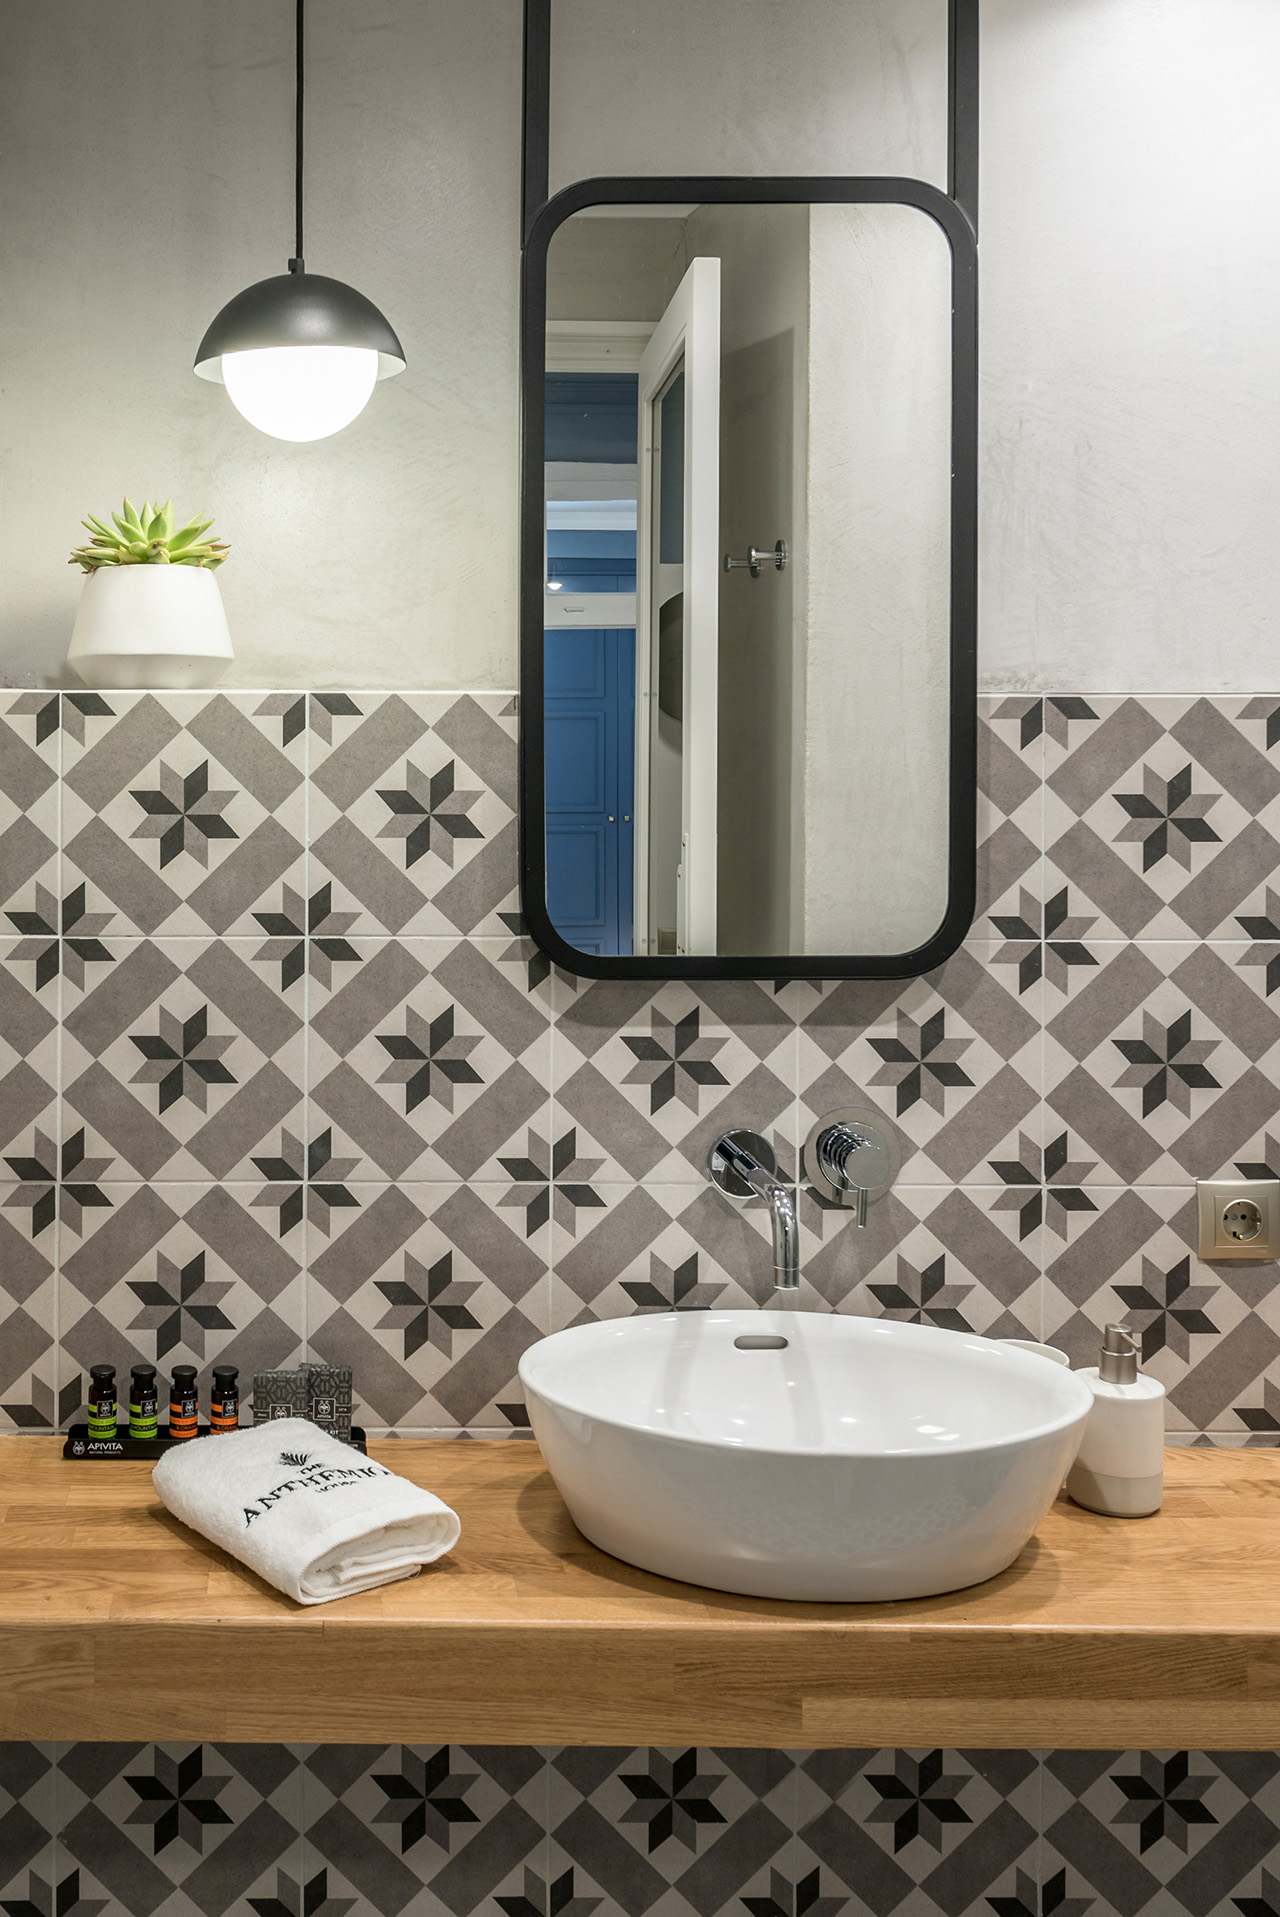 Geometric tiles in the bathroom gives the space added character.